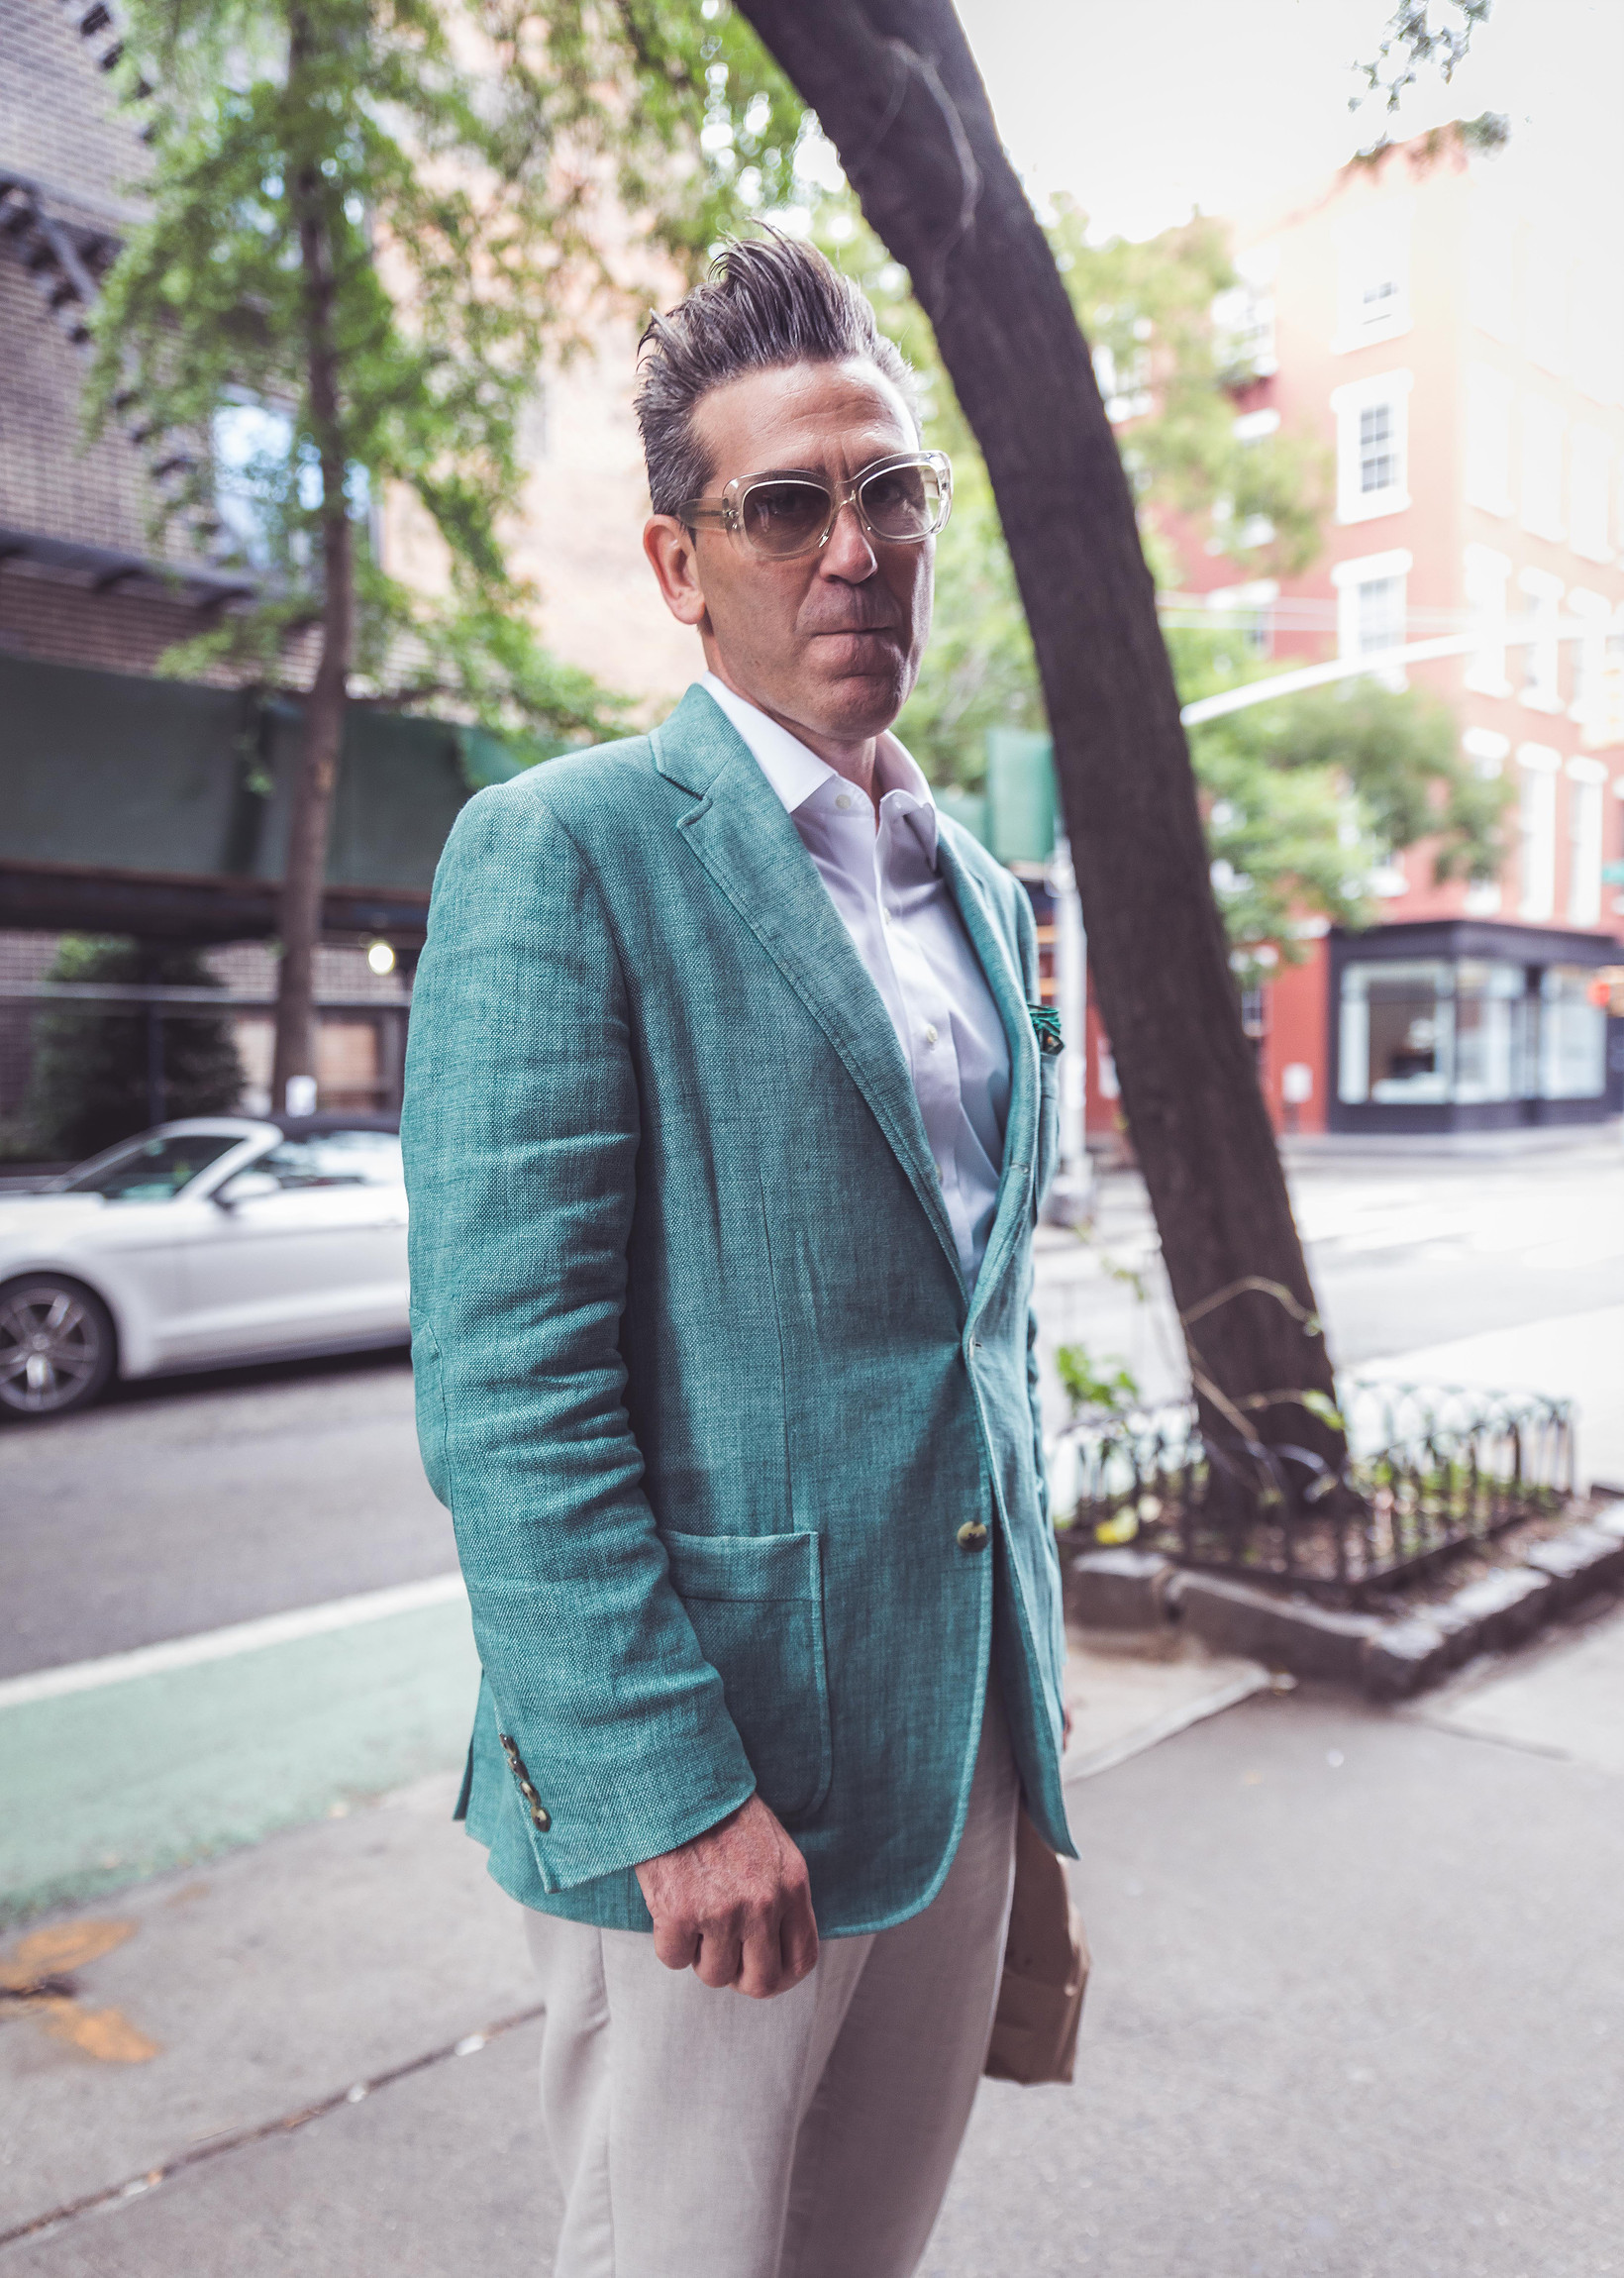 NYC STREETSTYLE PART 3: MEN EDITION